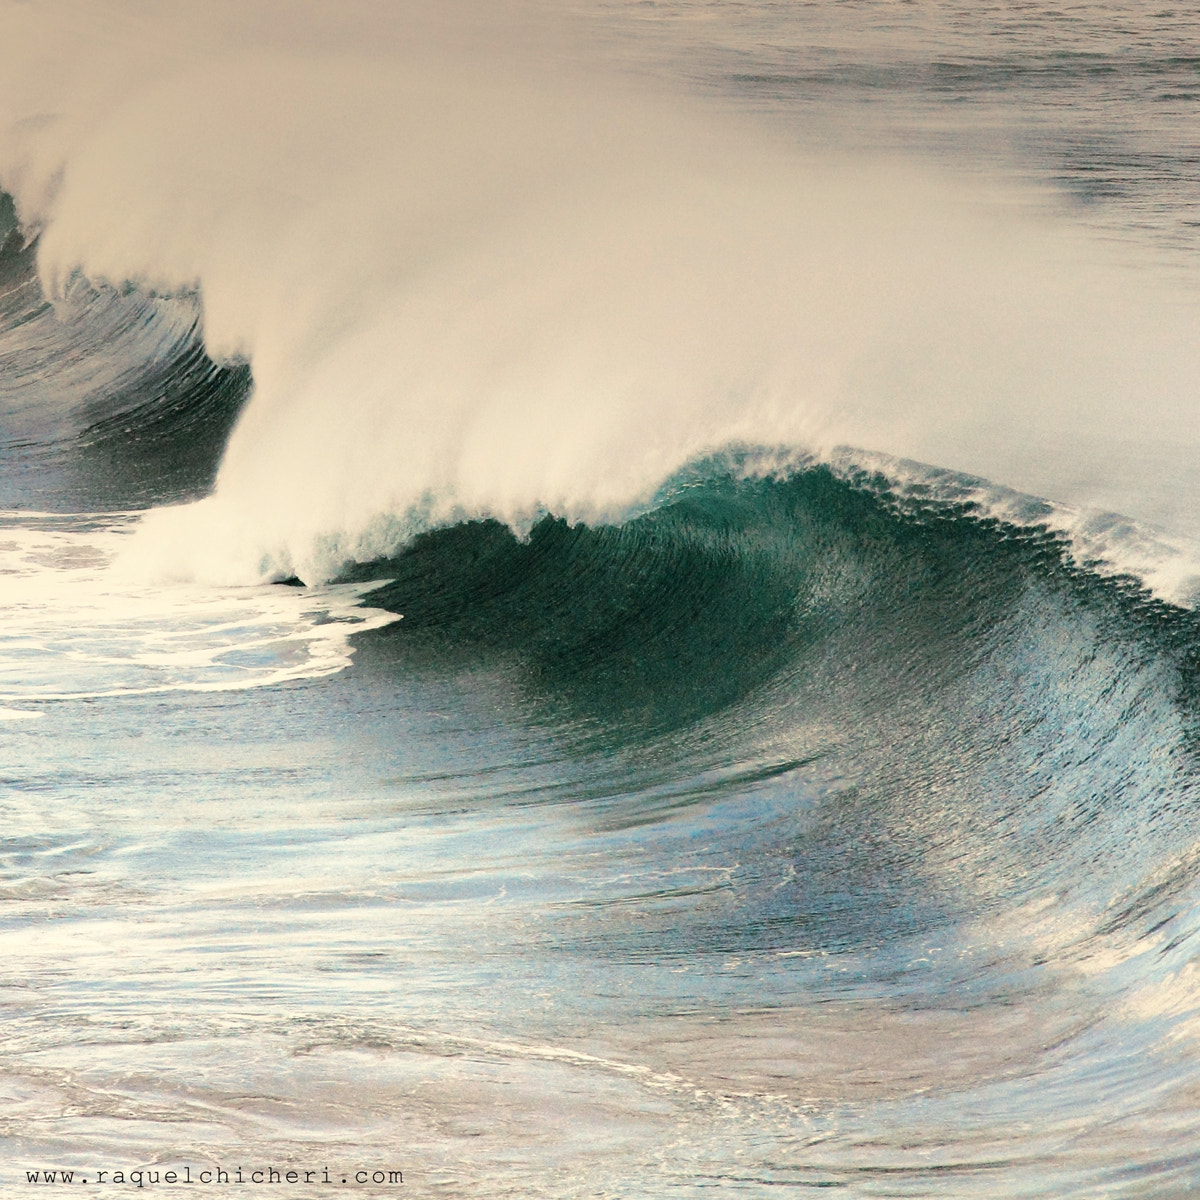 Photograph Wave by raquel lopez-chicheri on 500px